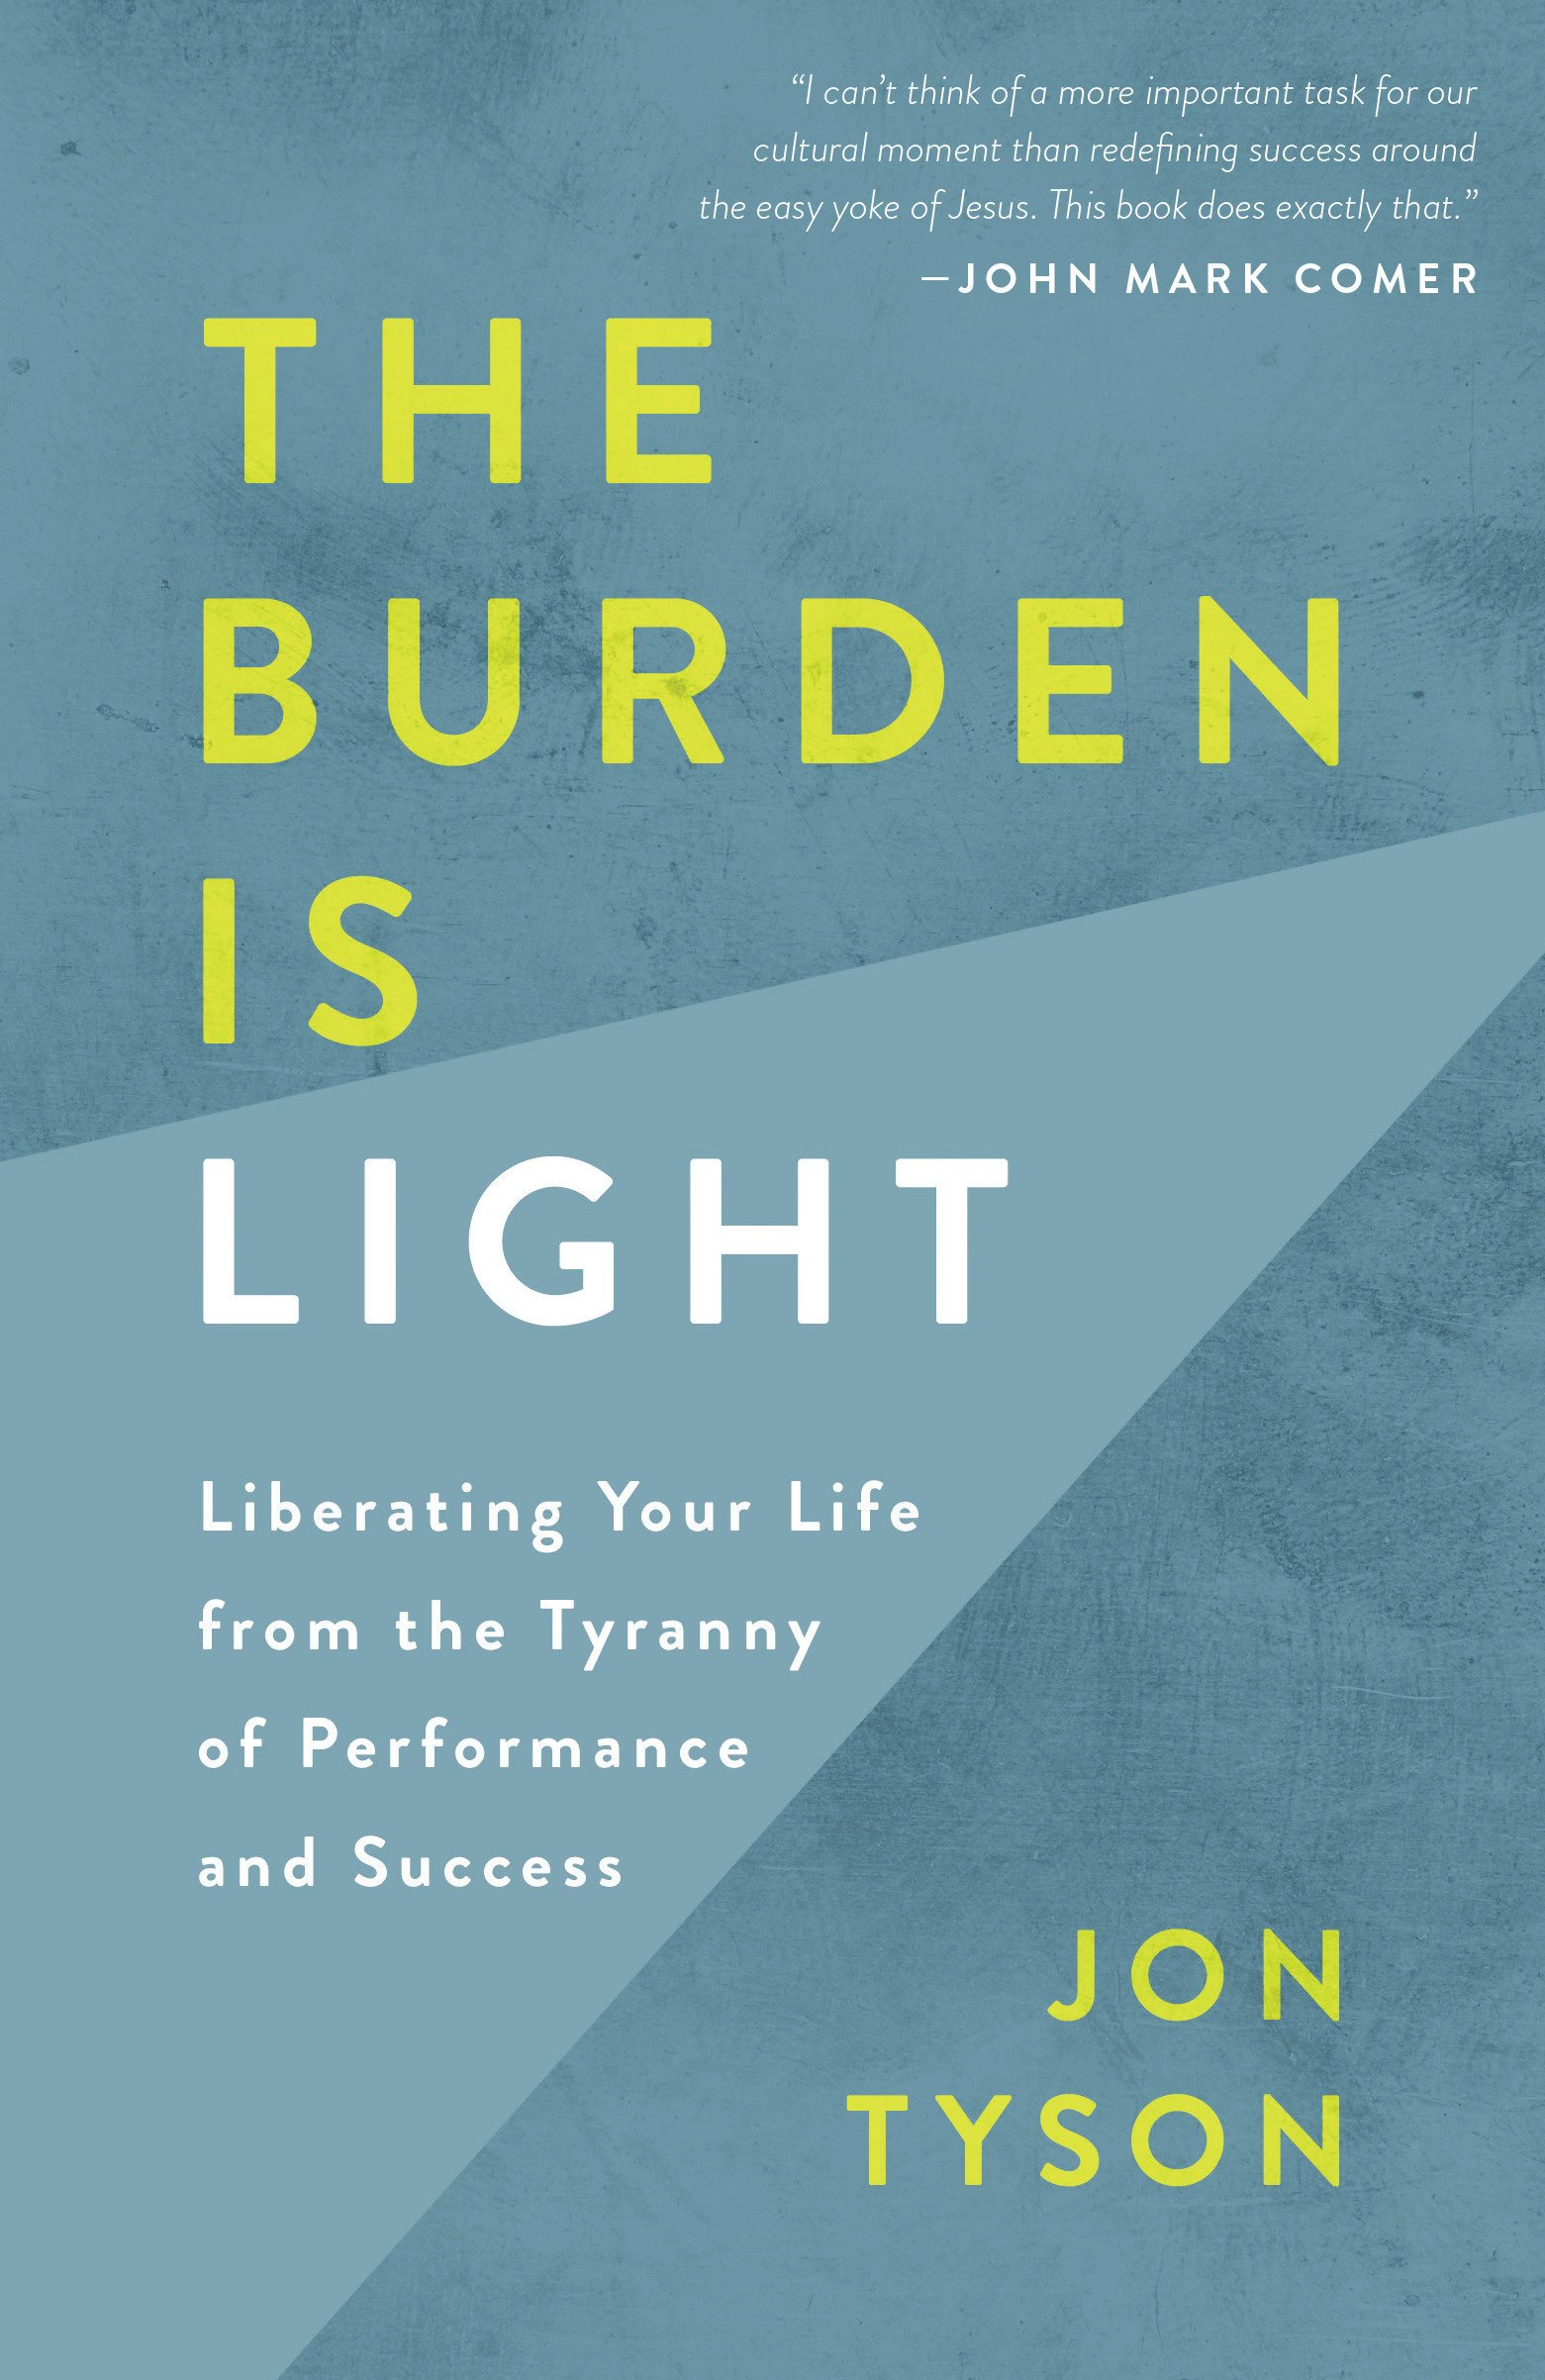 The Burden Is Light: Liberating Your Life from the Tyranny of Performance and Success